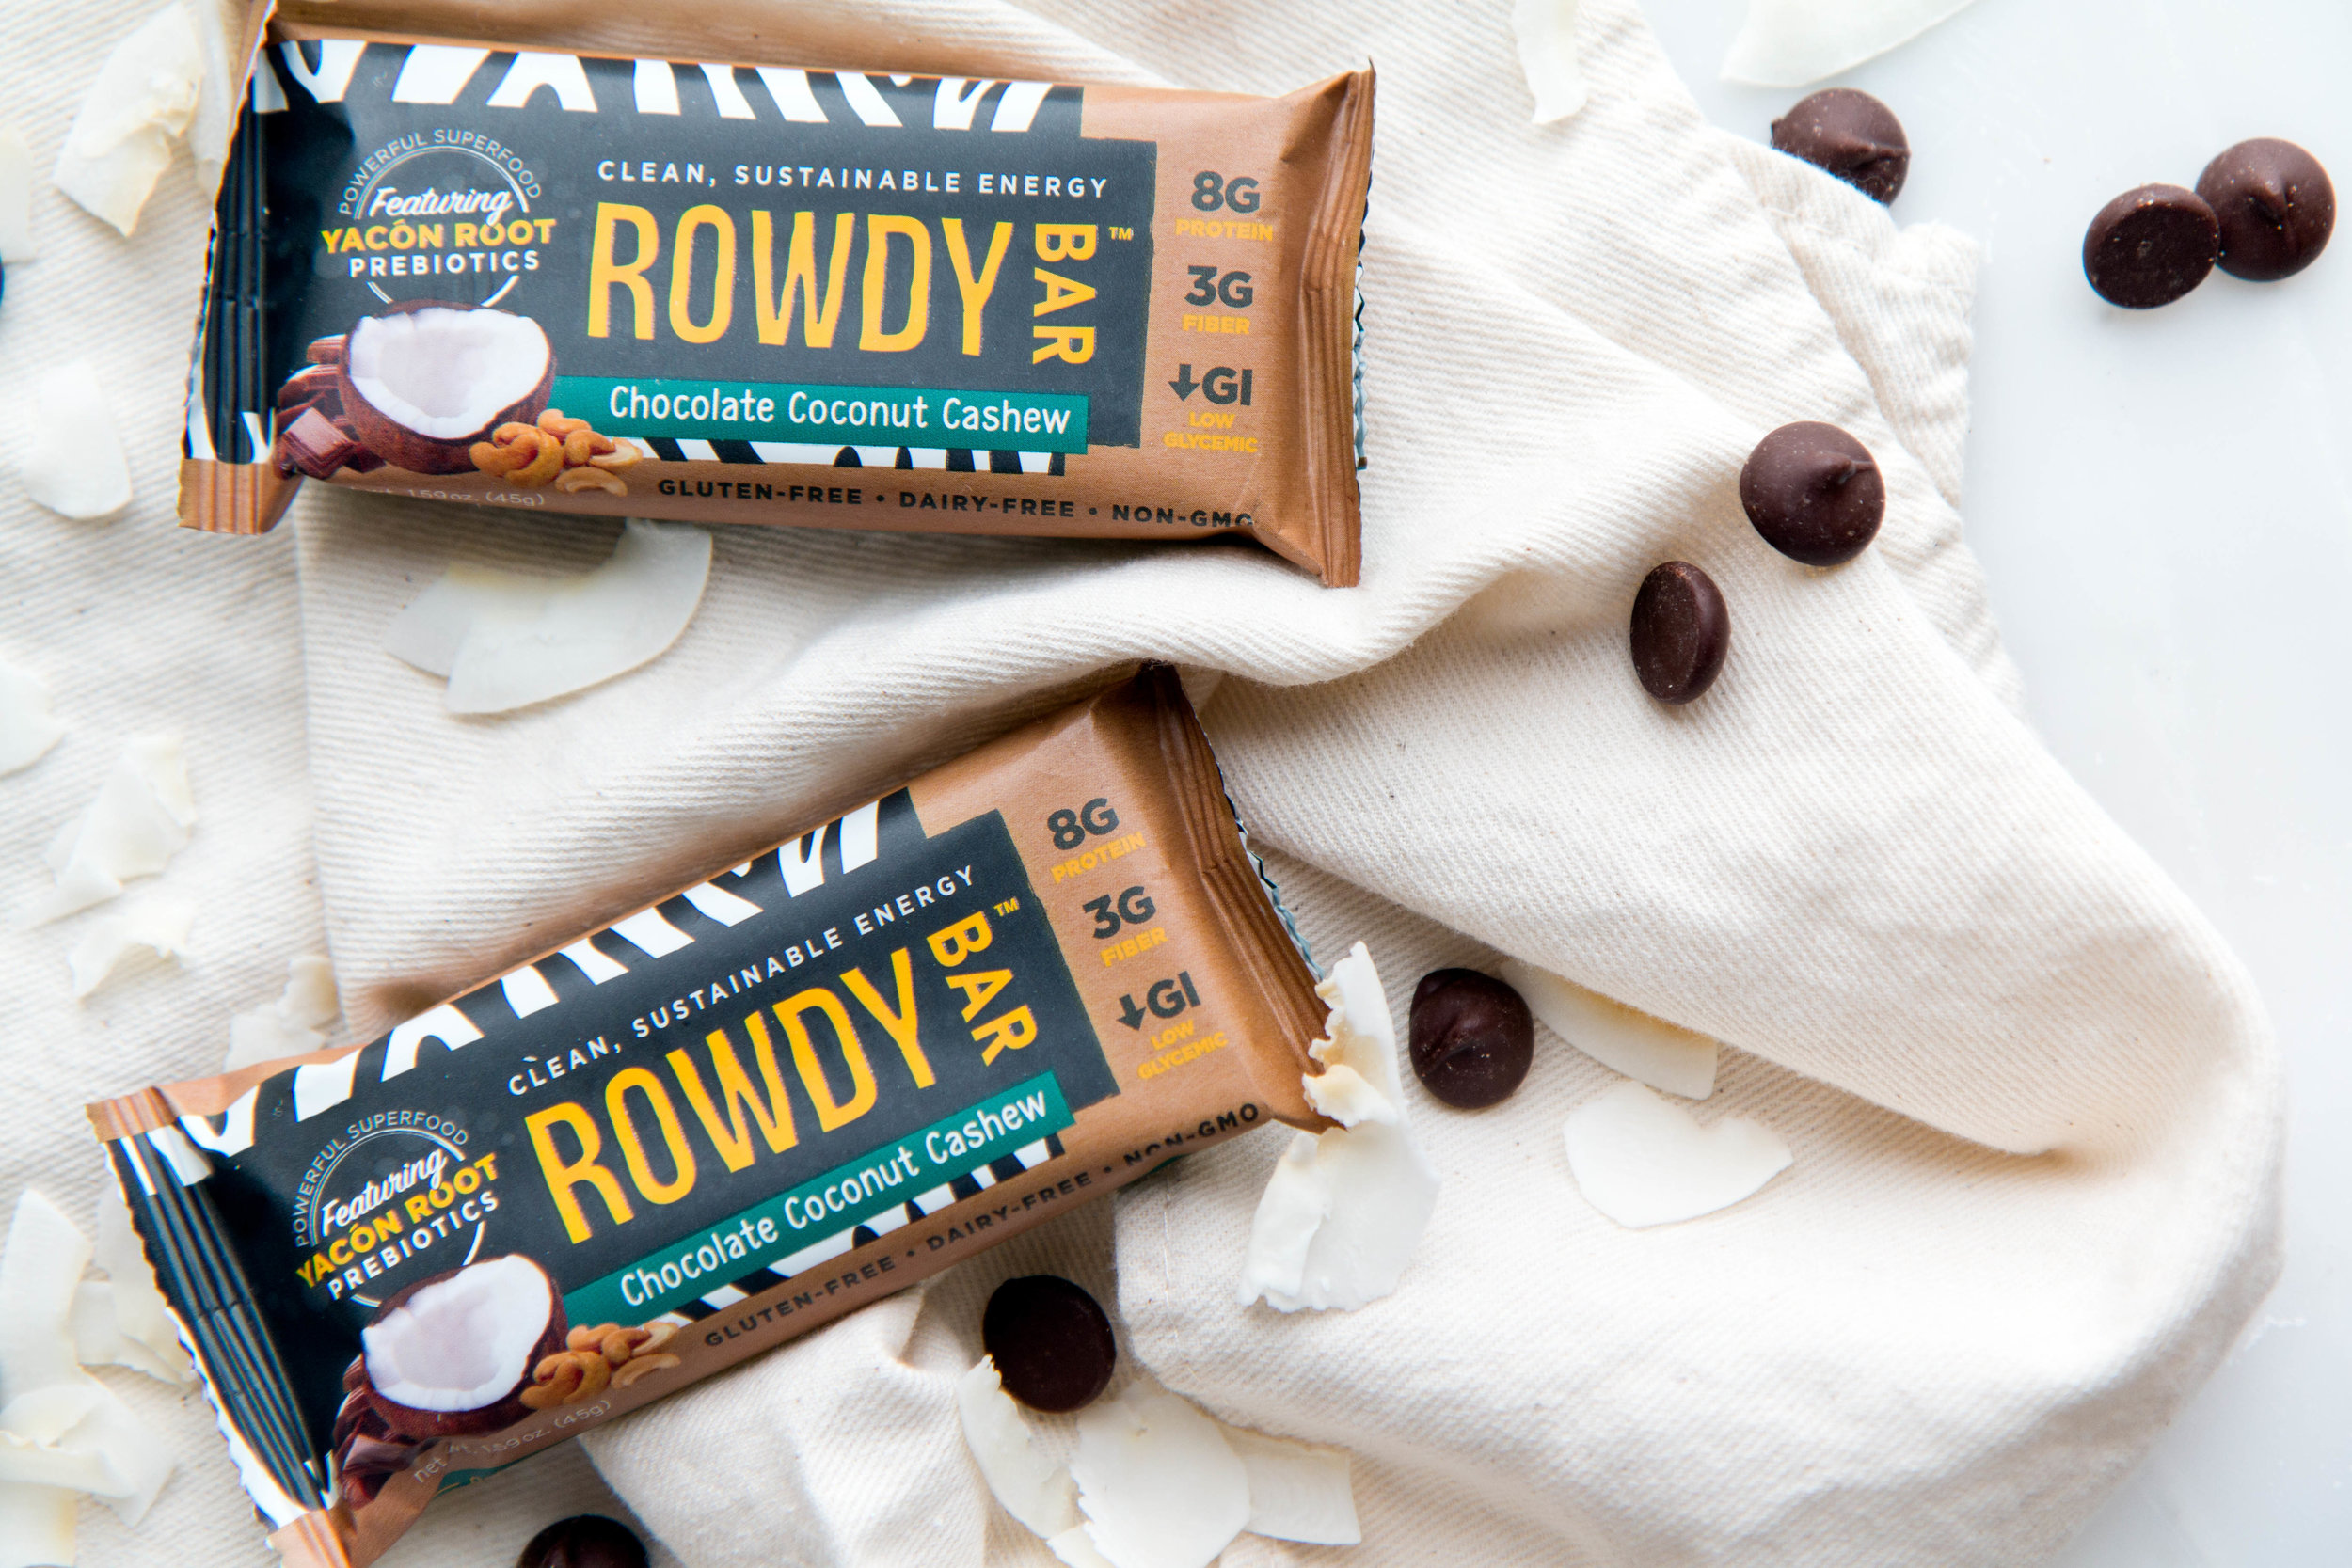 Prebiotic Sustainable Energy Rowdy Bars. 8 Simple Ingredients. Chocolate Coconut Cashew. Gluten-free, low-glycemic index, paleo-friendly, compatible with Whole30.